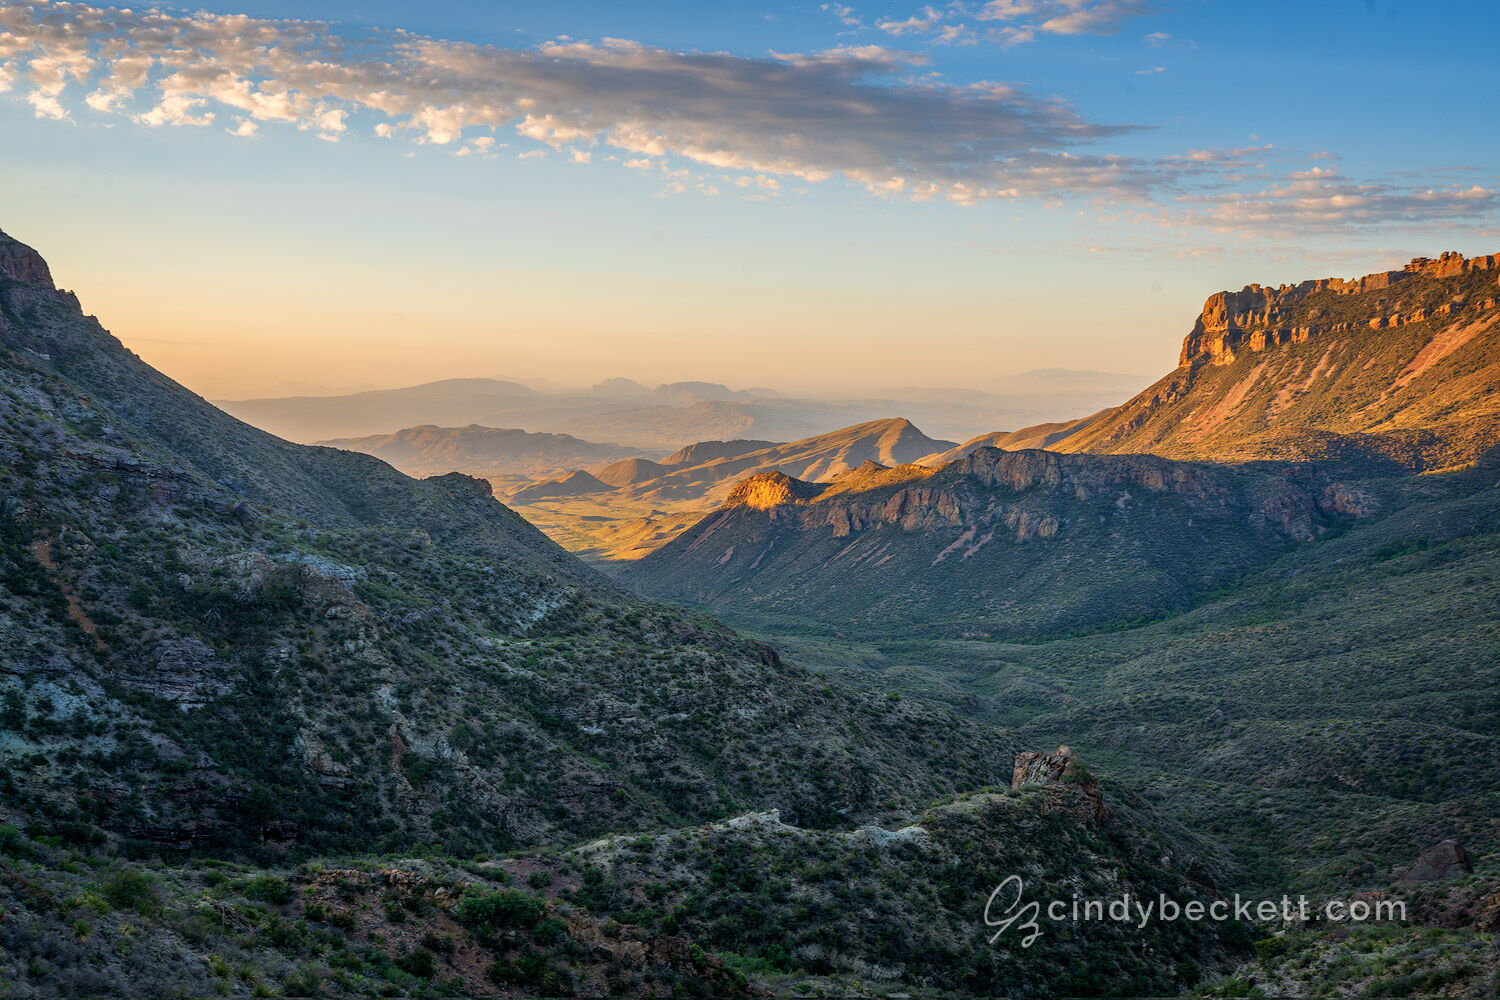 Sunrise light on southeastern face of Juniper Canyon as captured from the saddle on Lost Mine trail in Big Bend National Park.